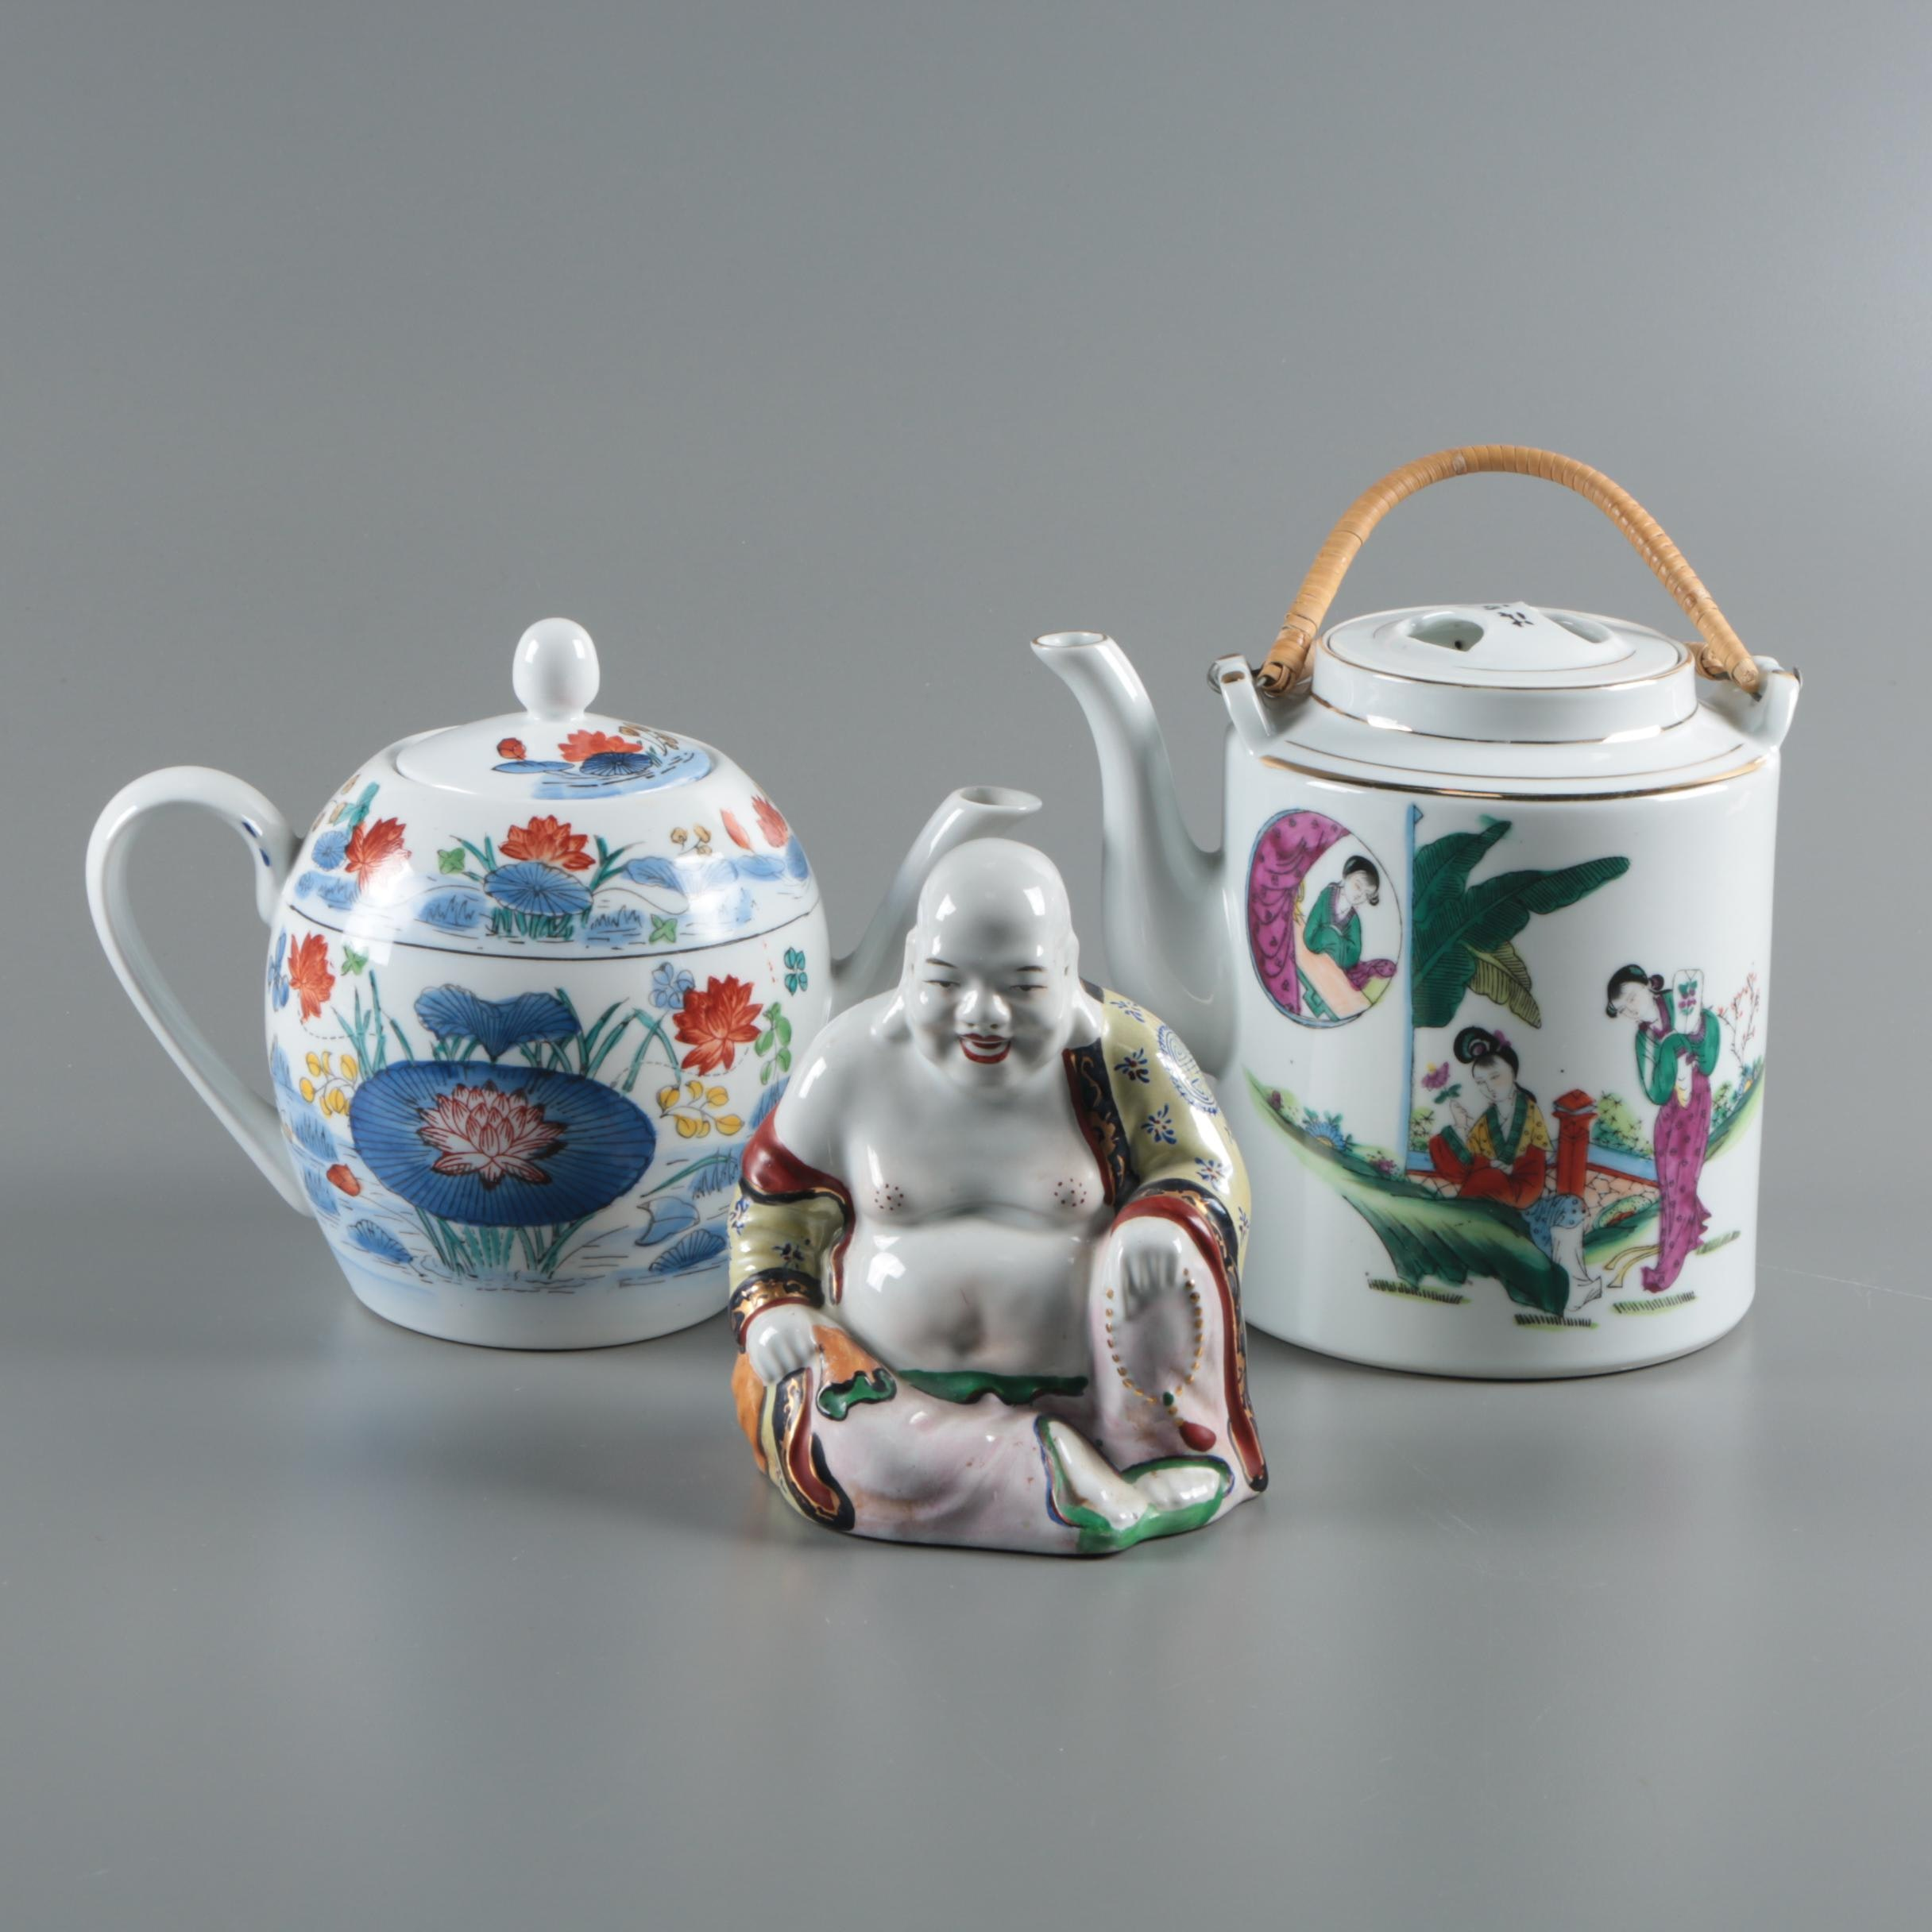 Chinese Teapots and Budai Figurine